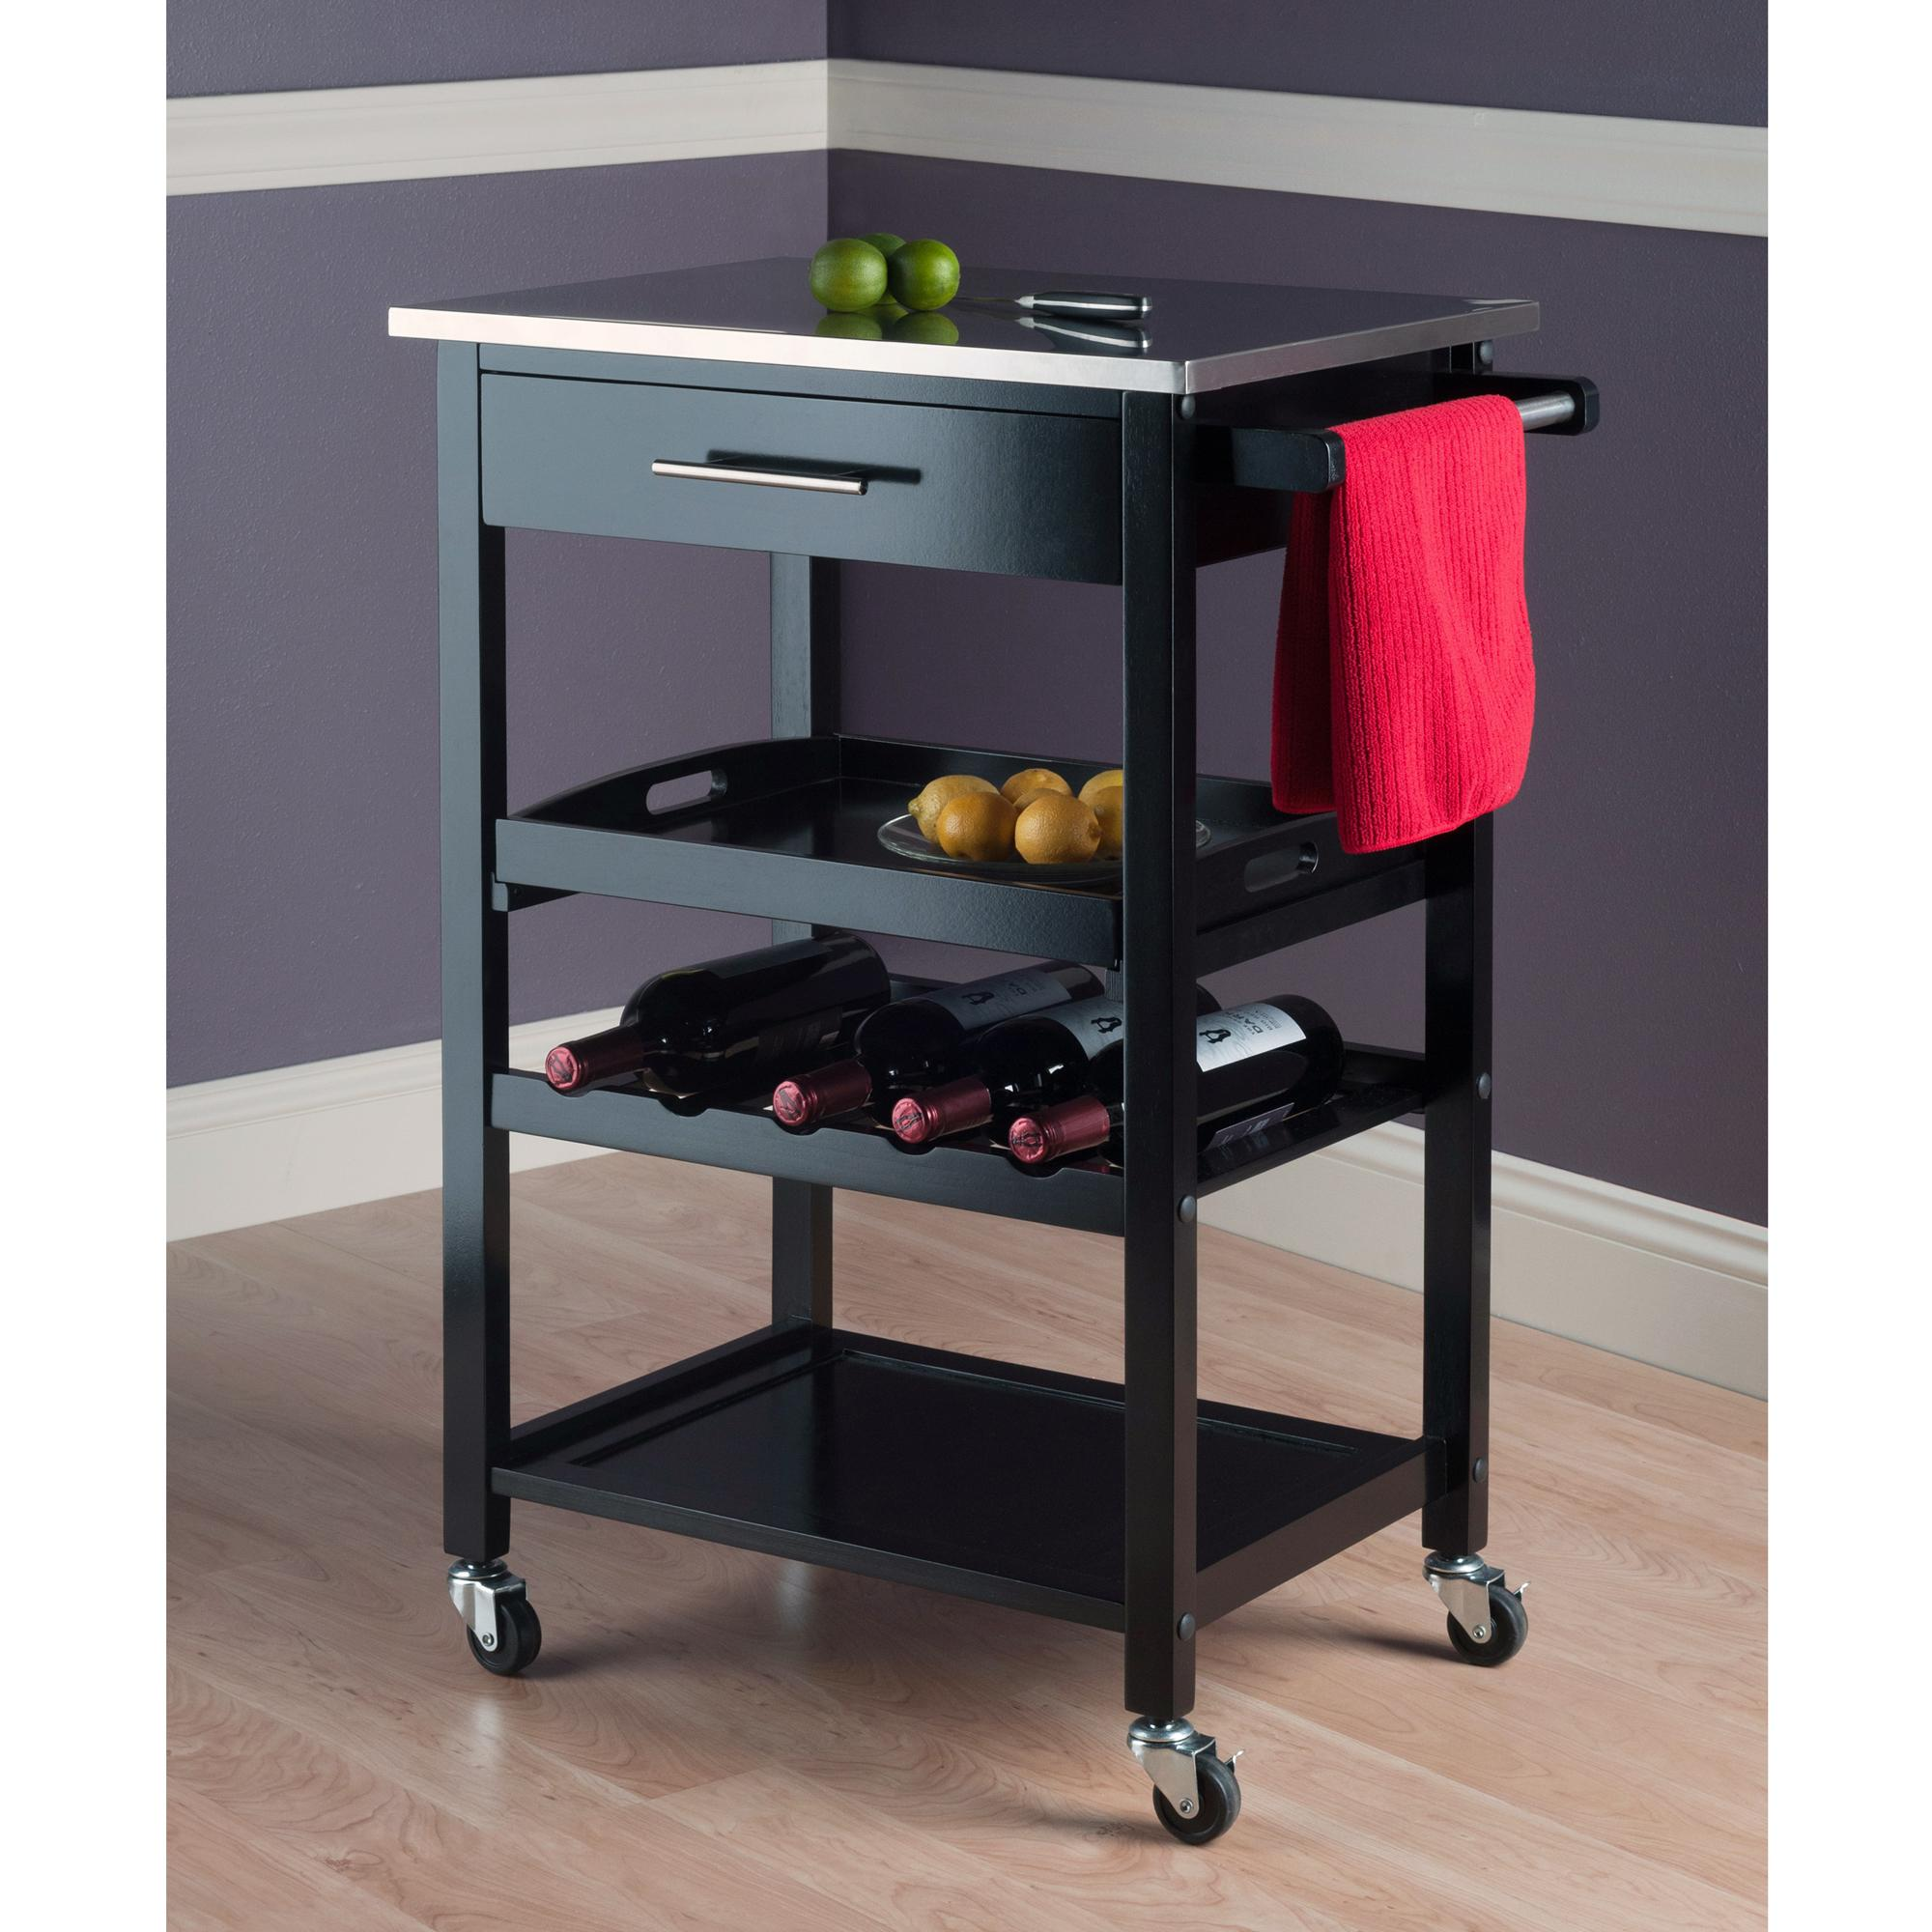 Winsome Wood Anthony Kitchen Cart Stainless Steel Amazonca Home